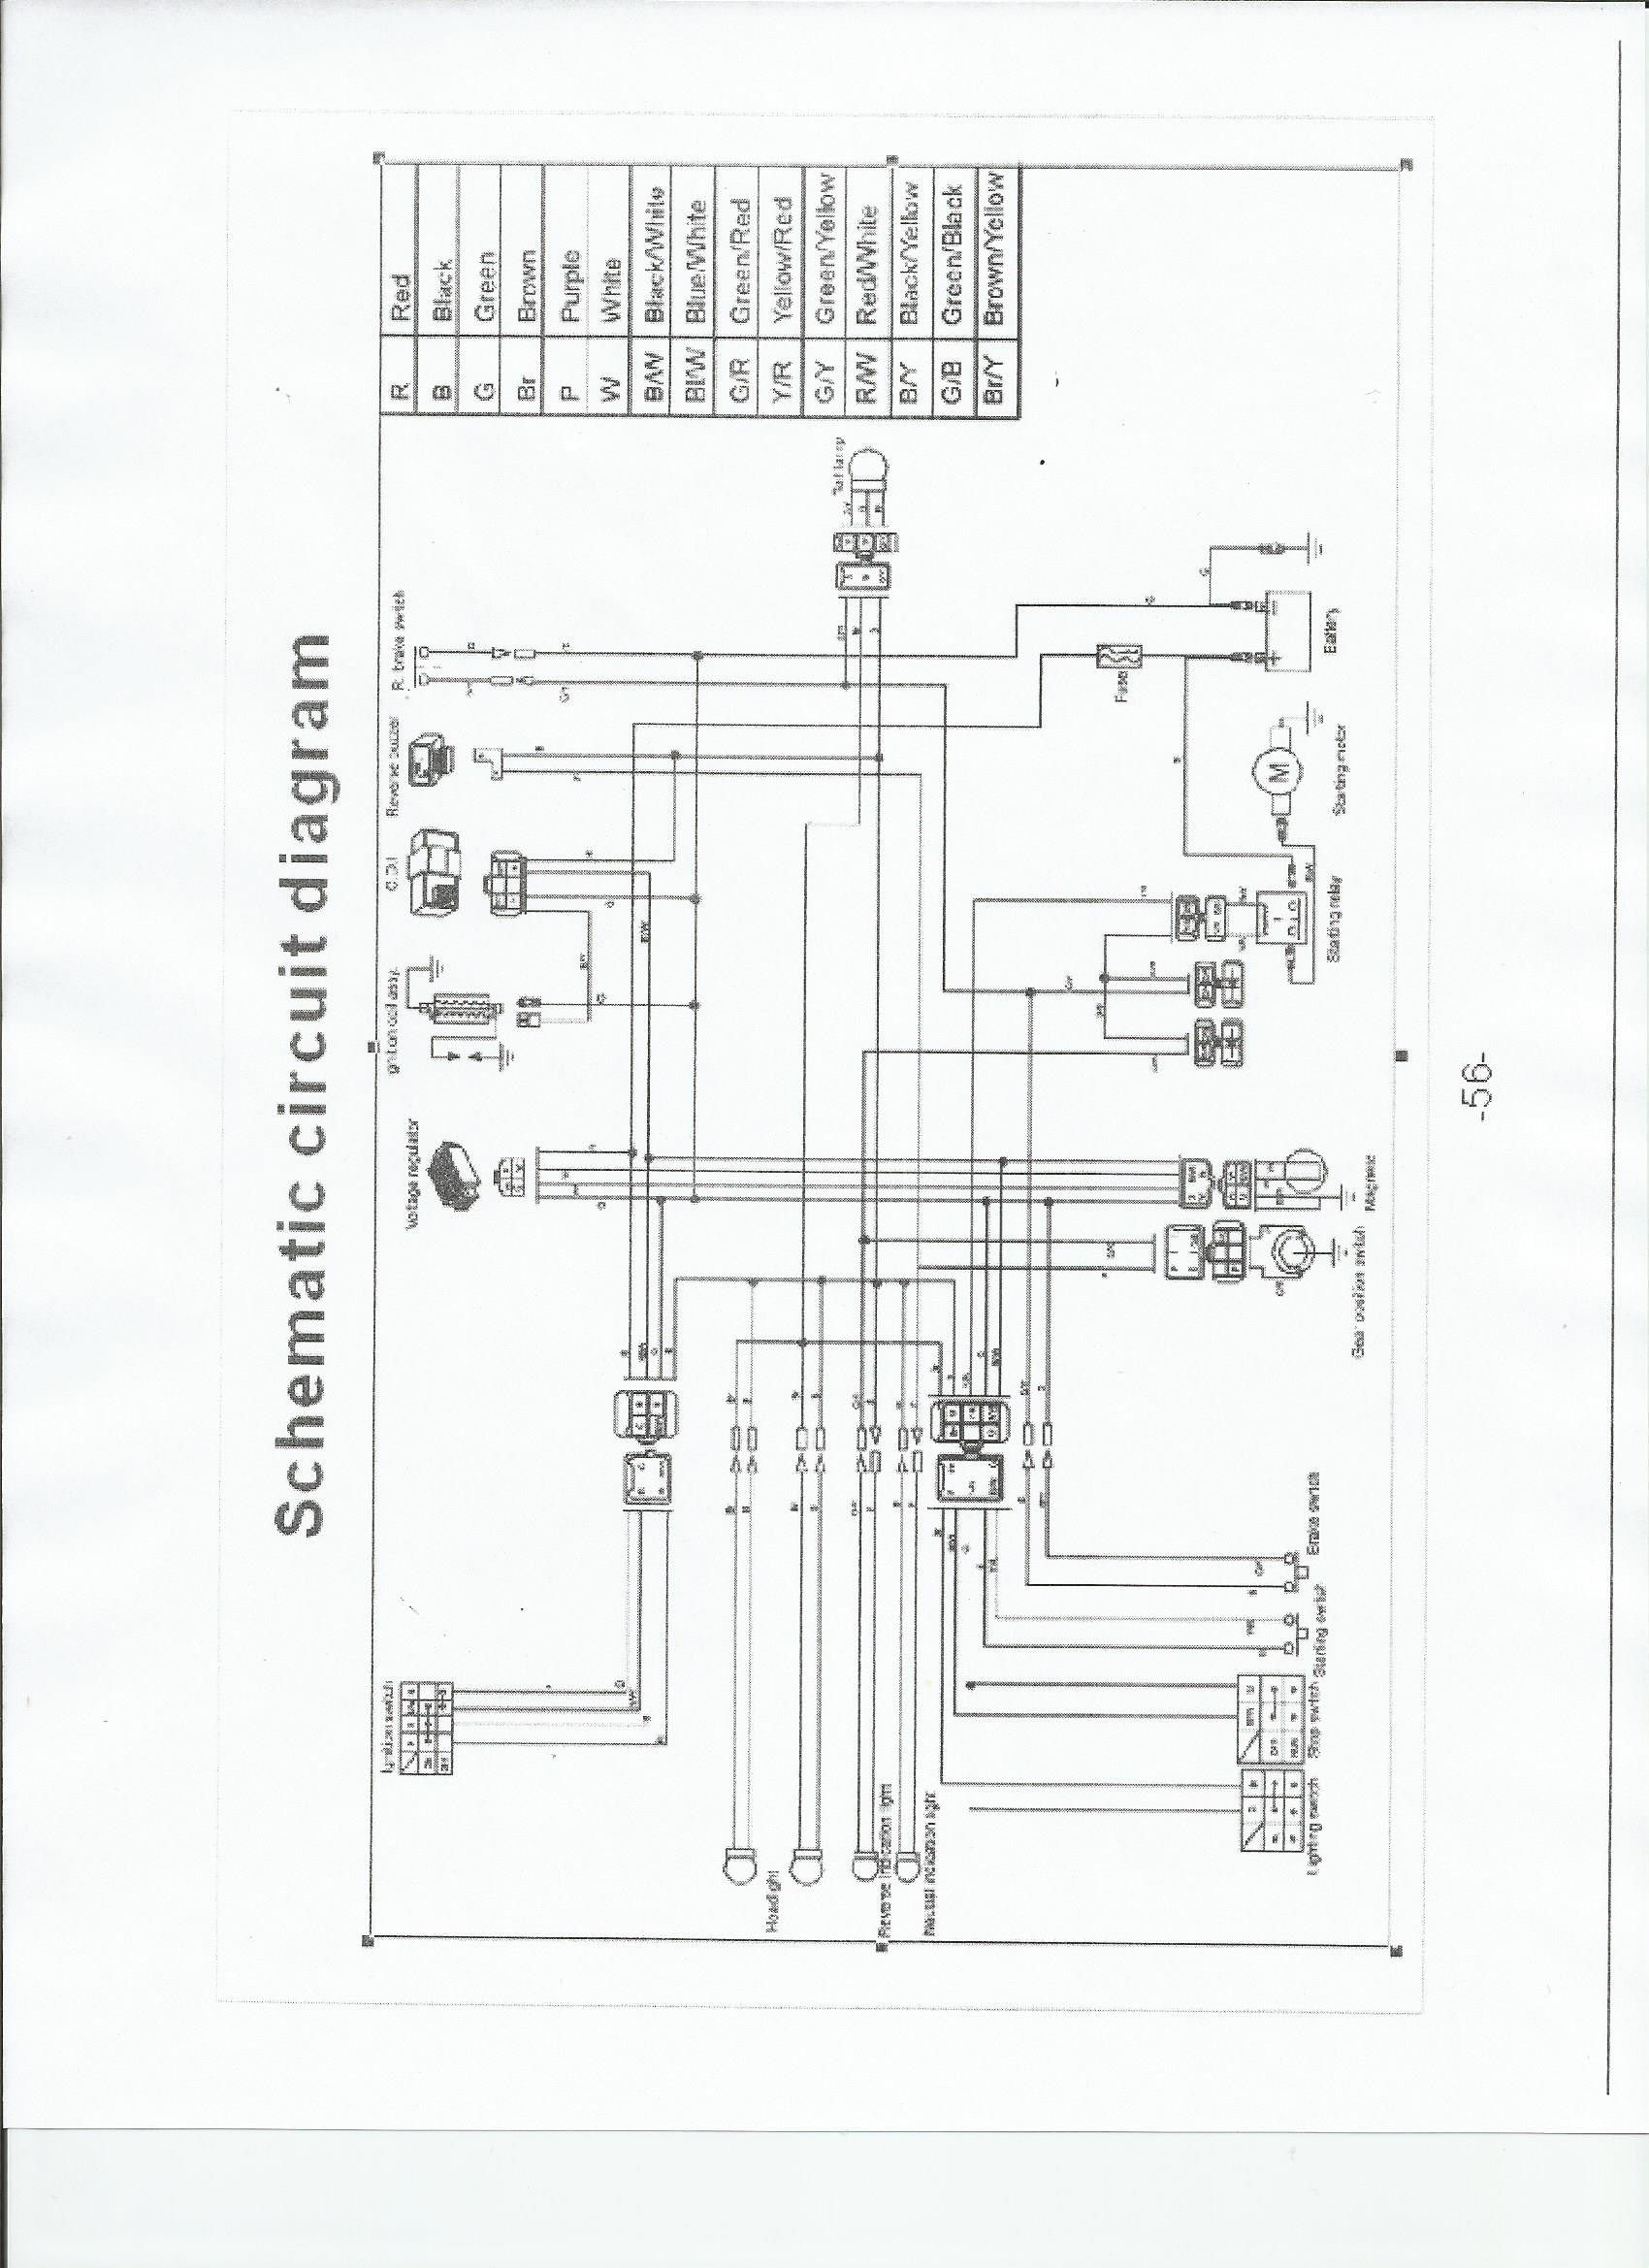 wiring diagram for caravan electrics chinese quad wiring diagram  chinese quad wiring diagram